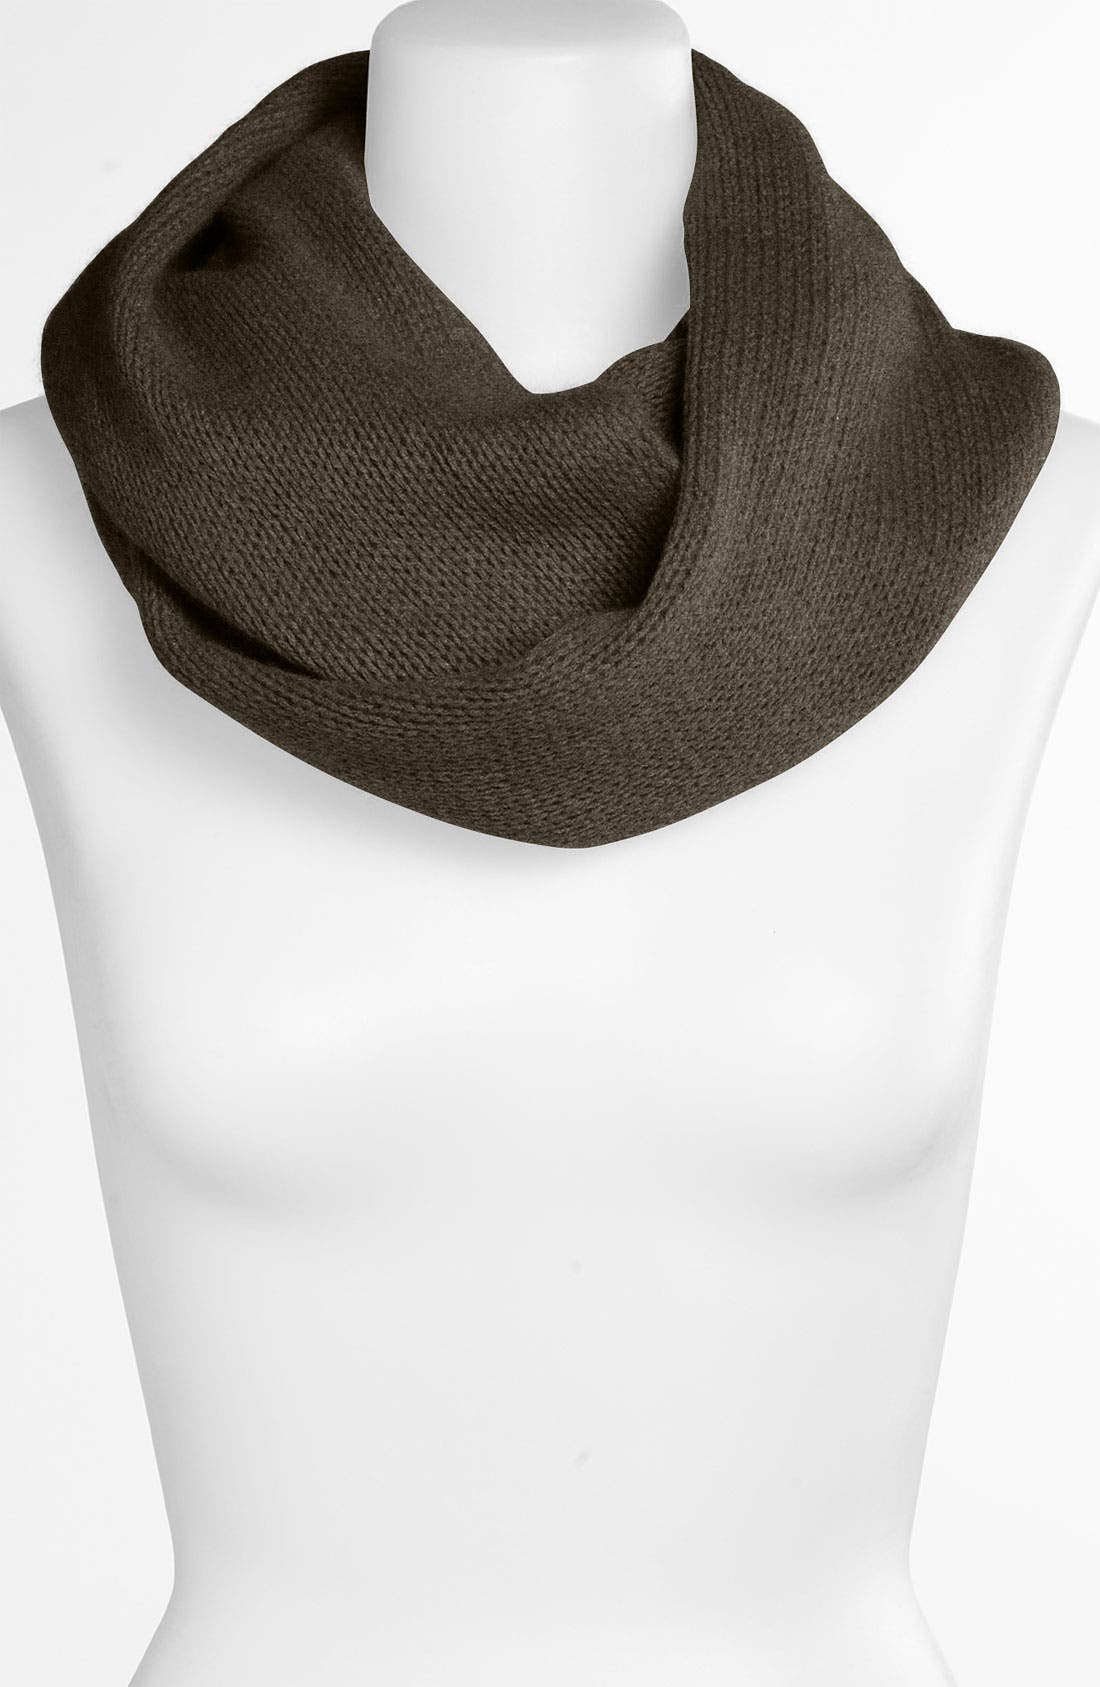 Alternate Image 1 Selected - Nordstrom Cashmere Infinity Scarf